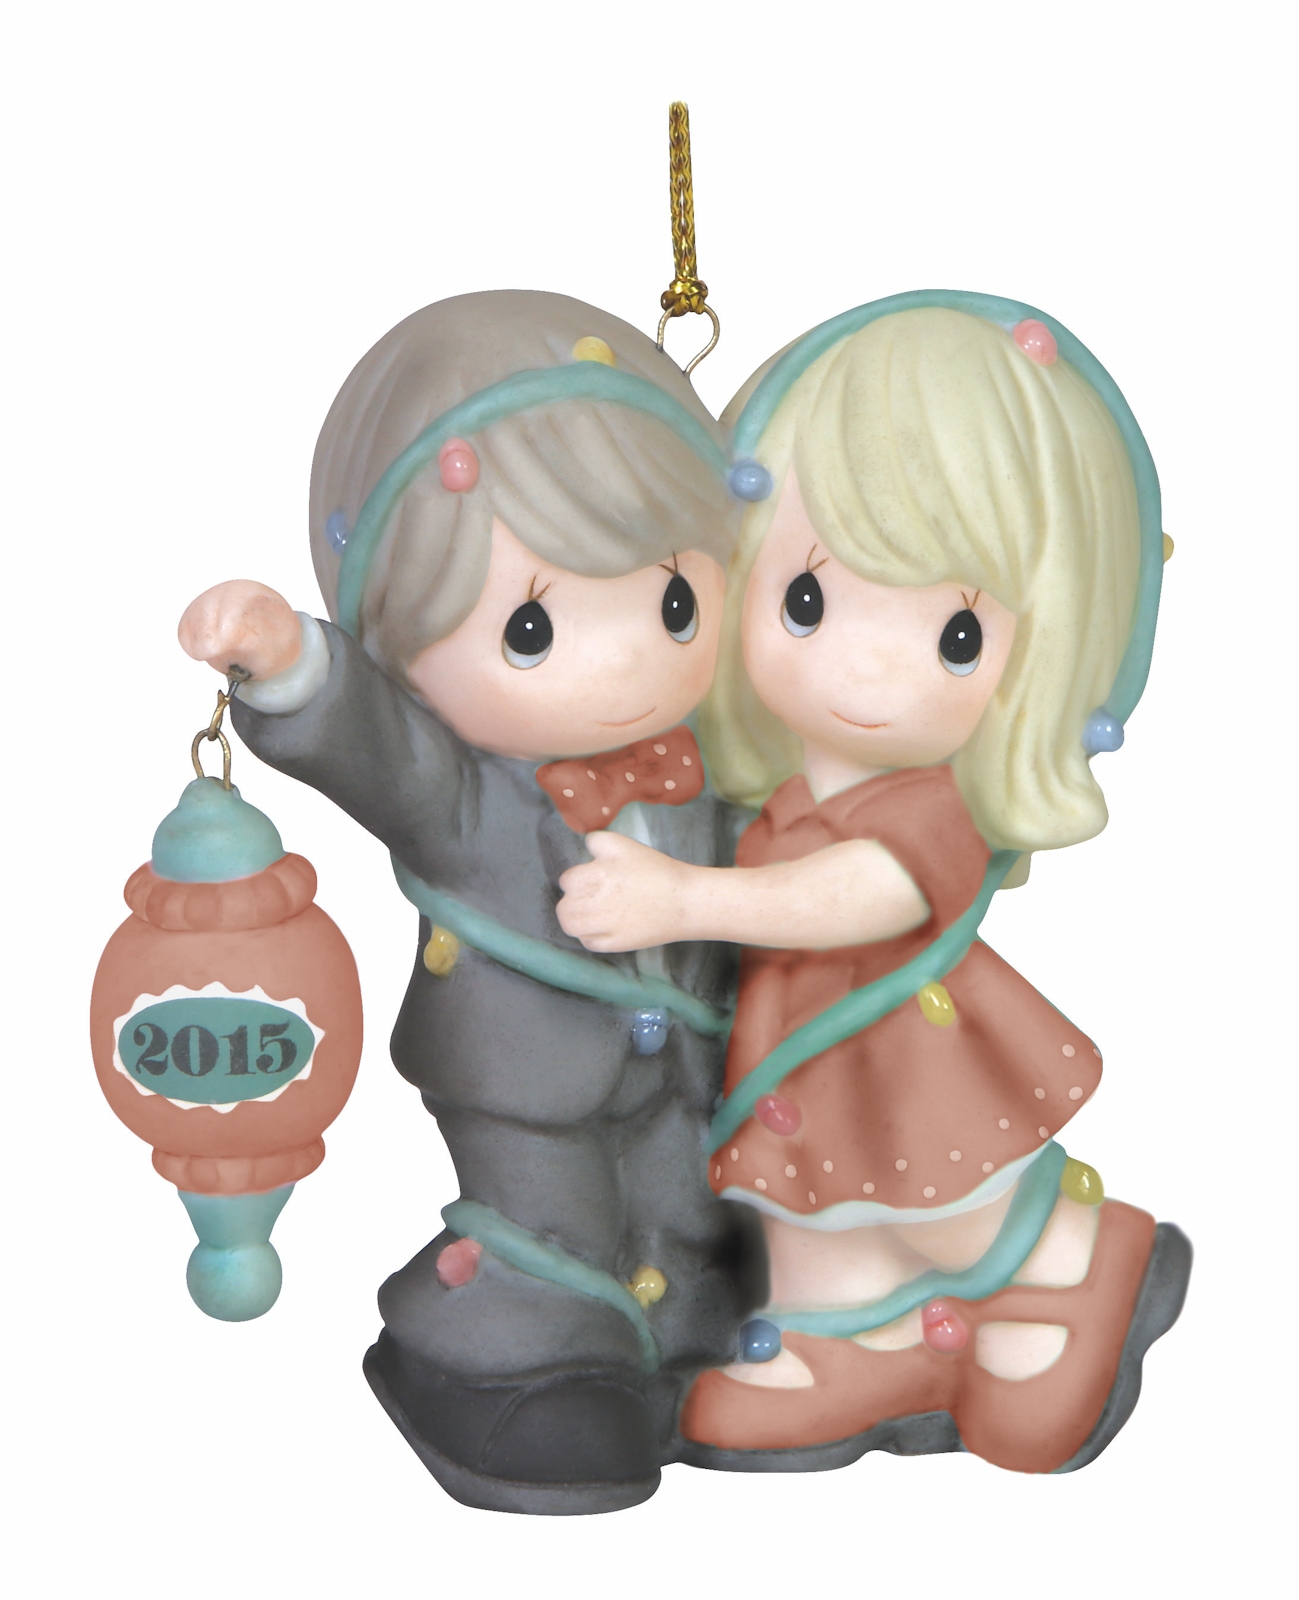 2015 Precious Moments Christmas Ornaments - Hooked on Ornaments